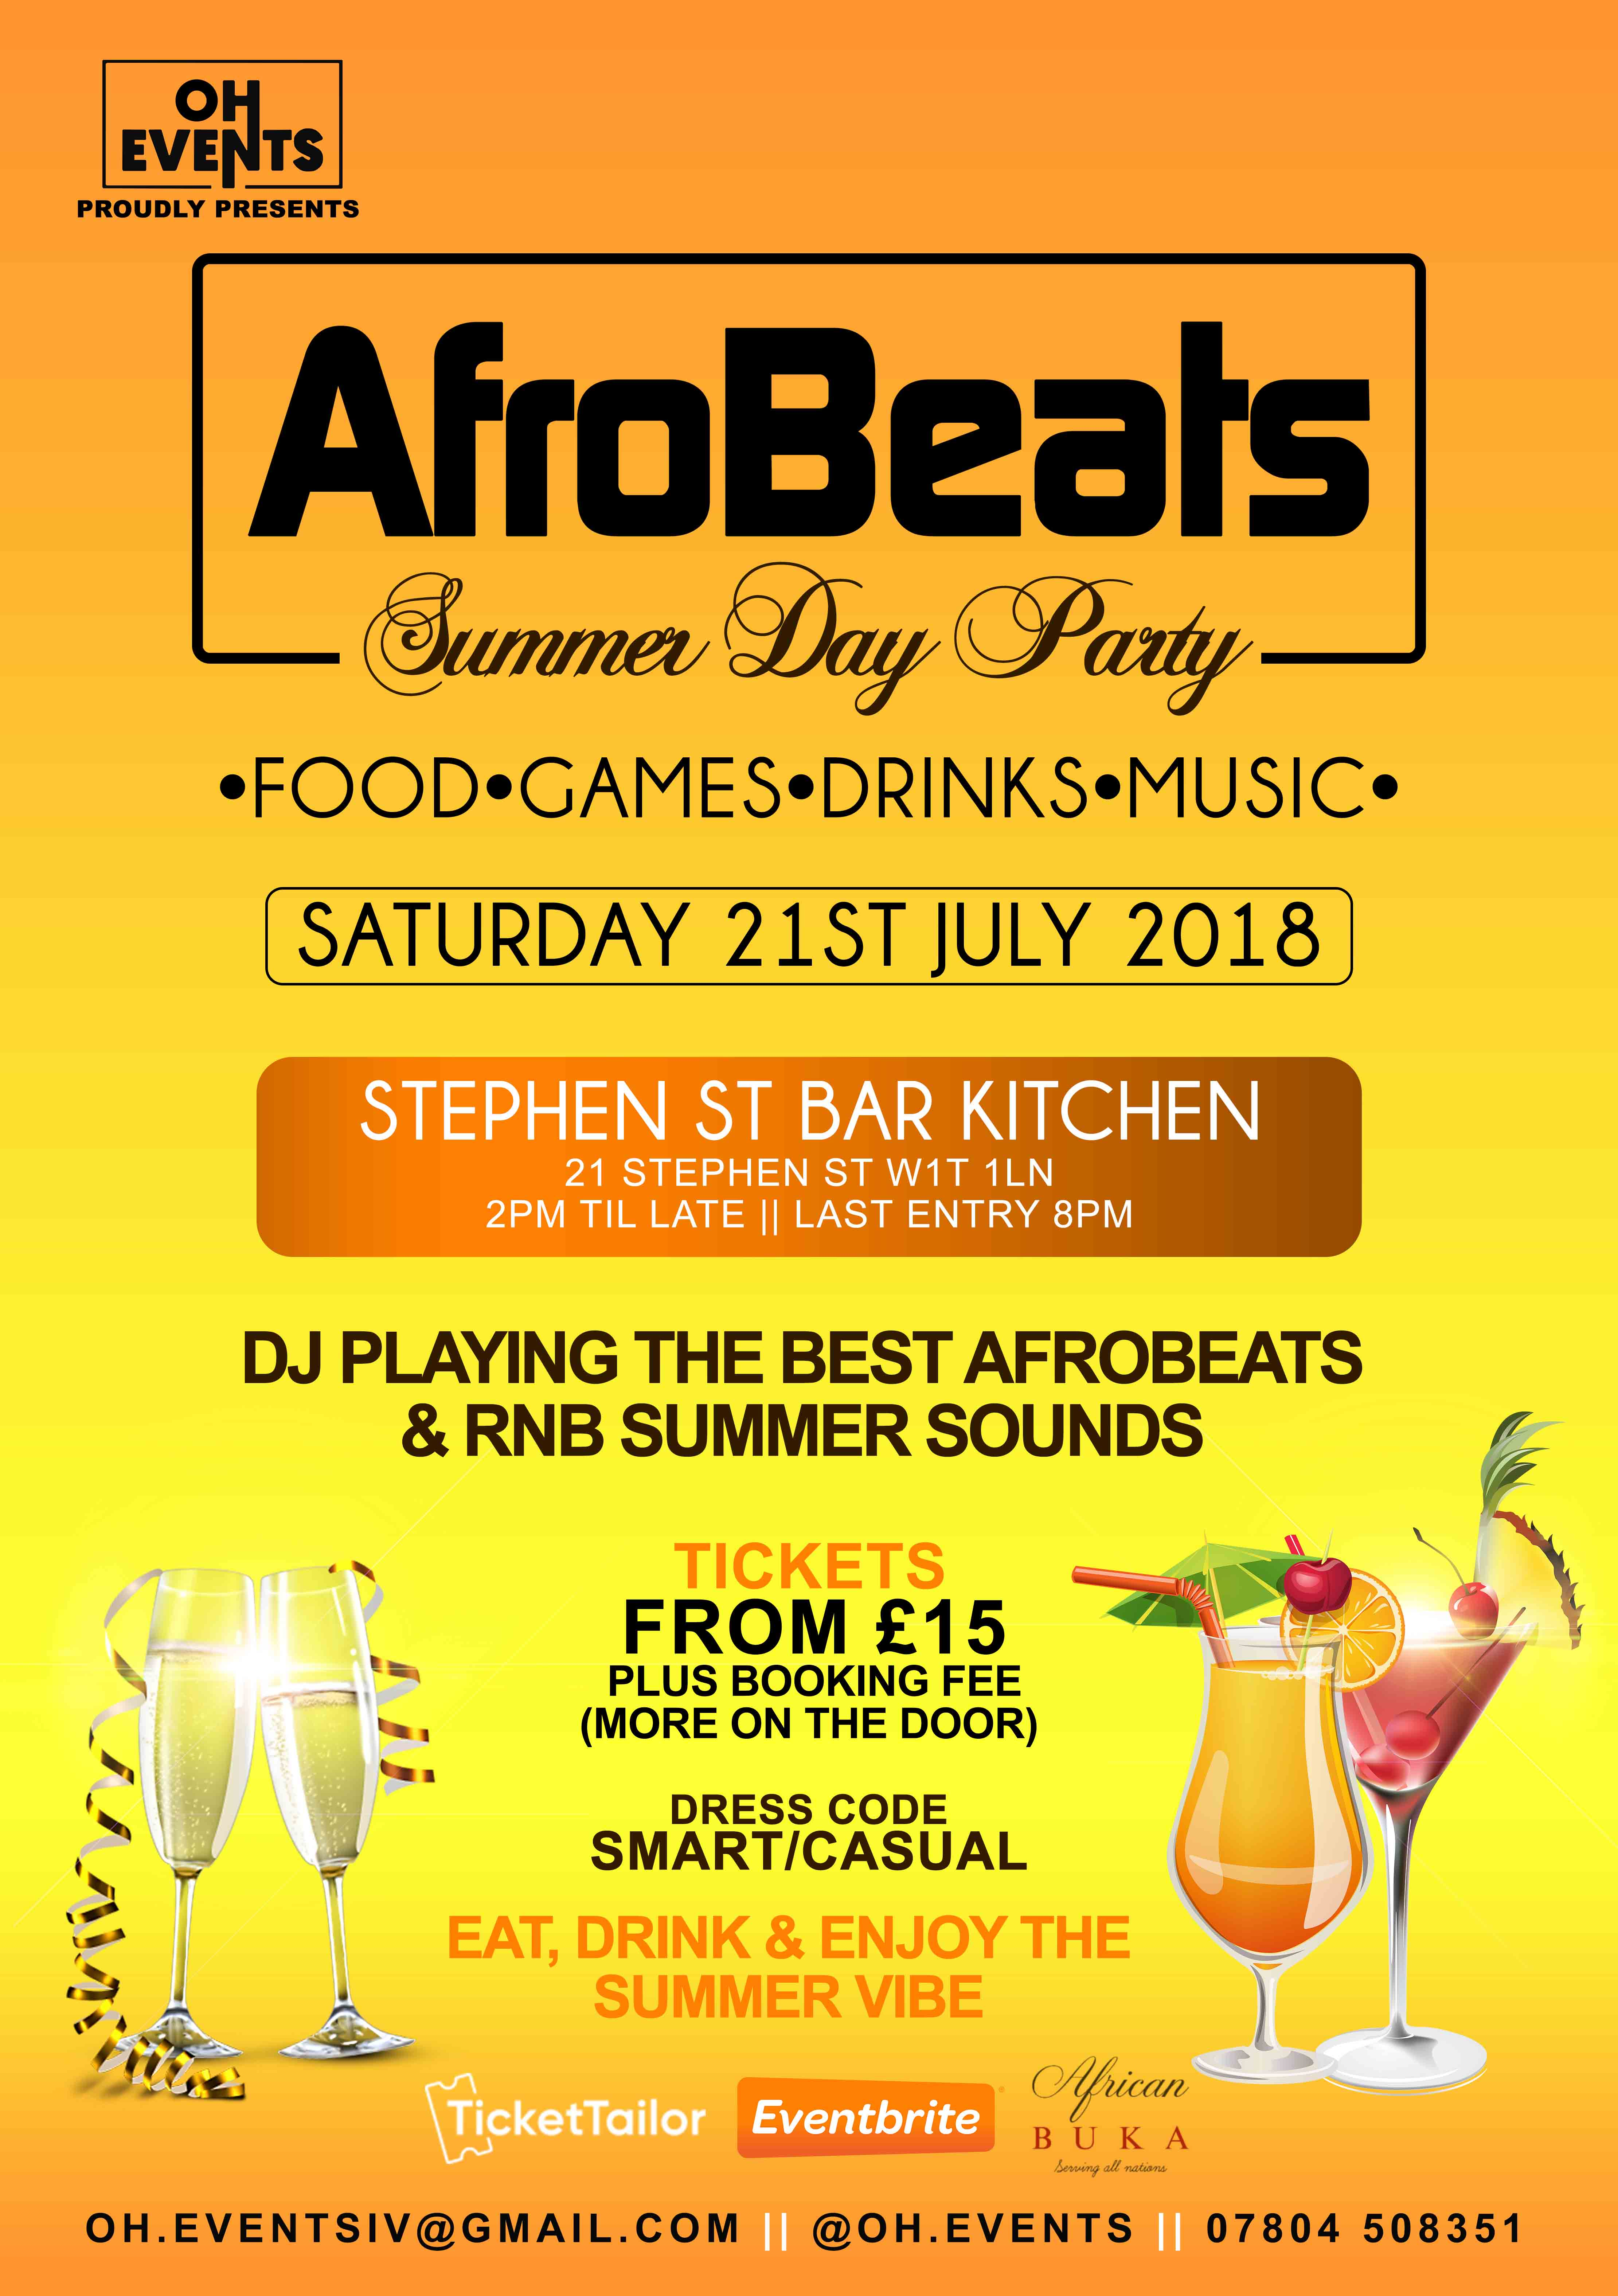 Afrobeats Summer Day Party | Fitzrovia, London Daytime